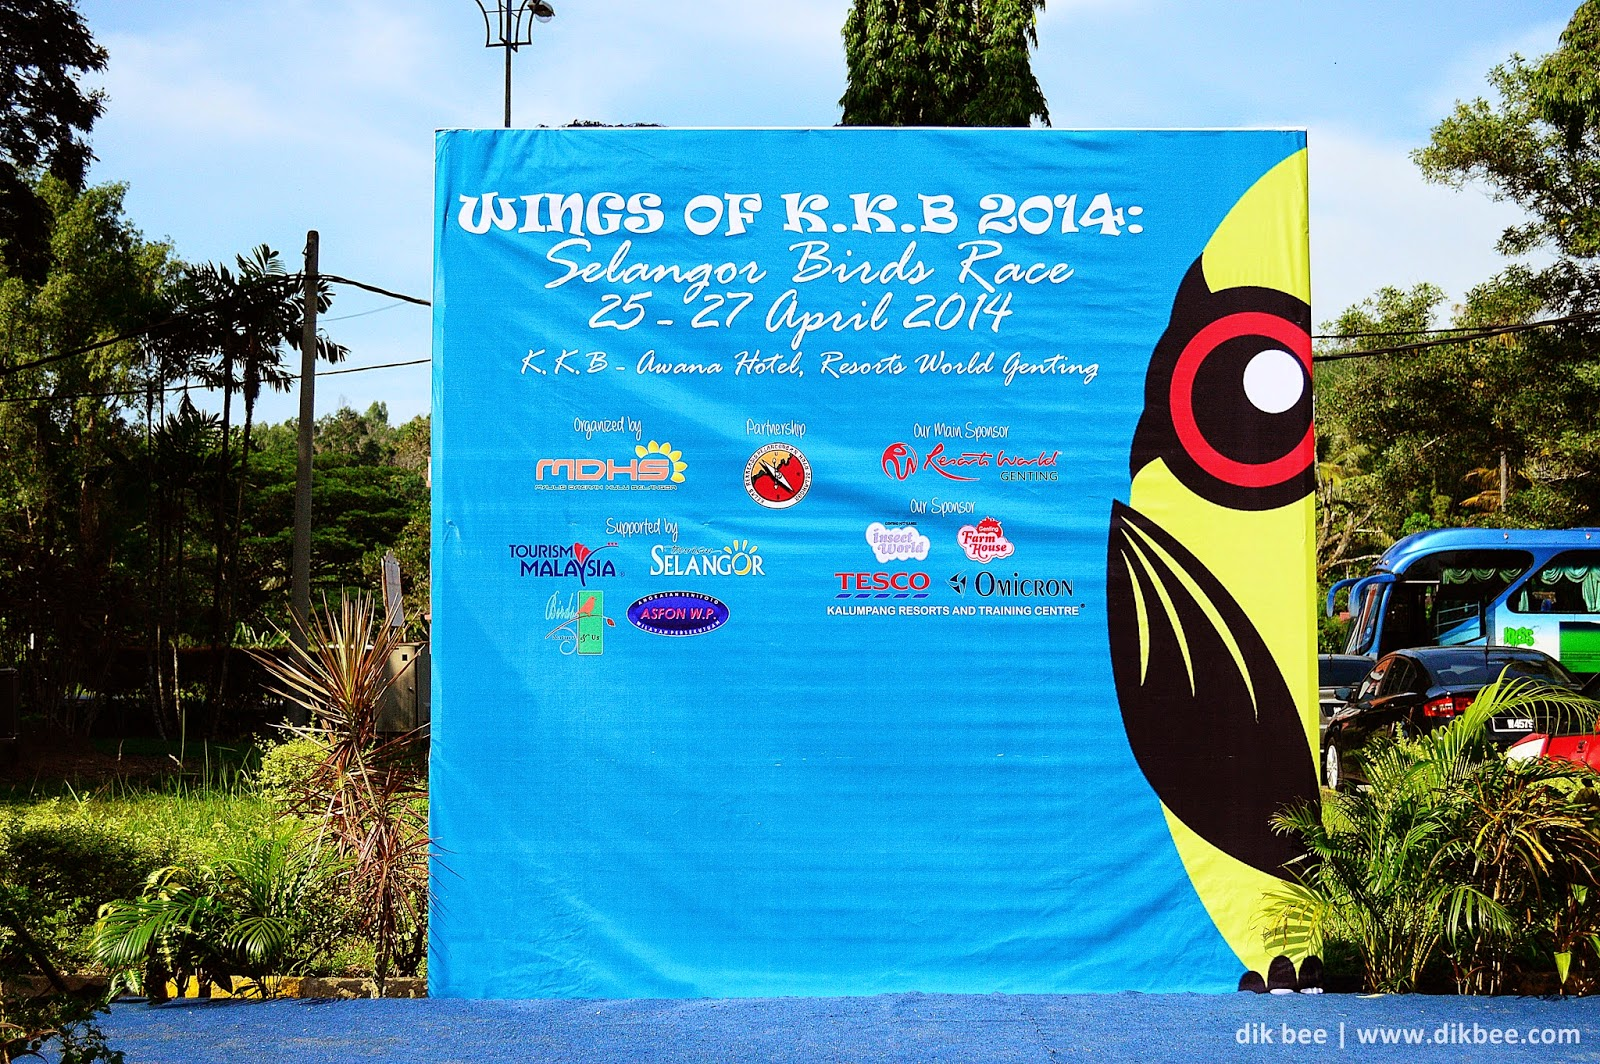 Wings Of KKB 2014 | Selangor Bird Race